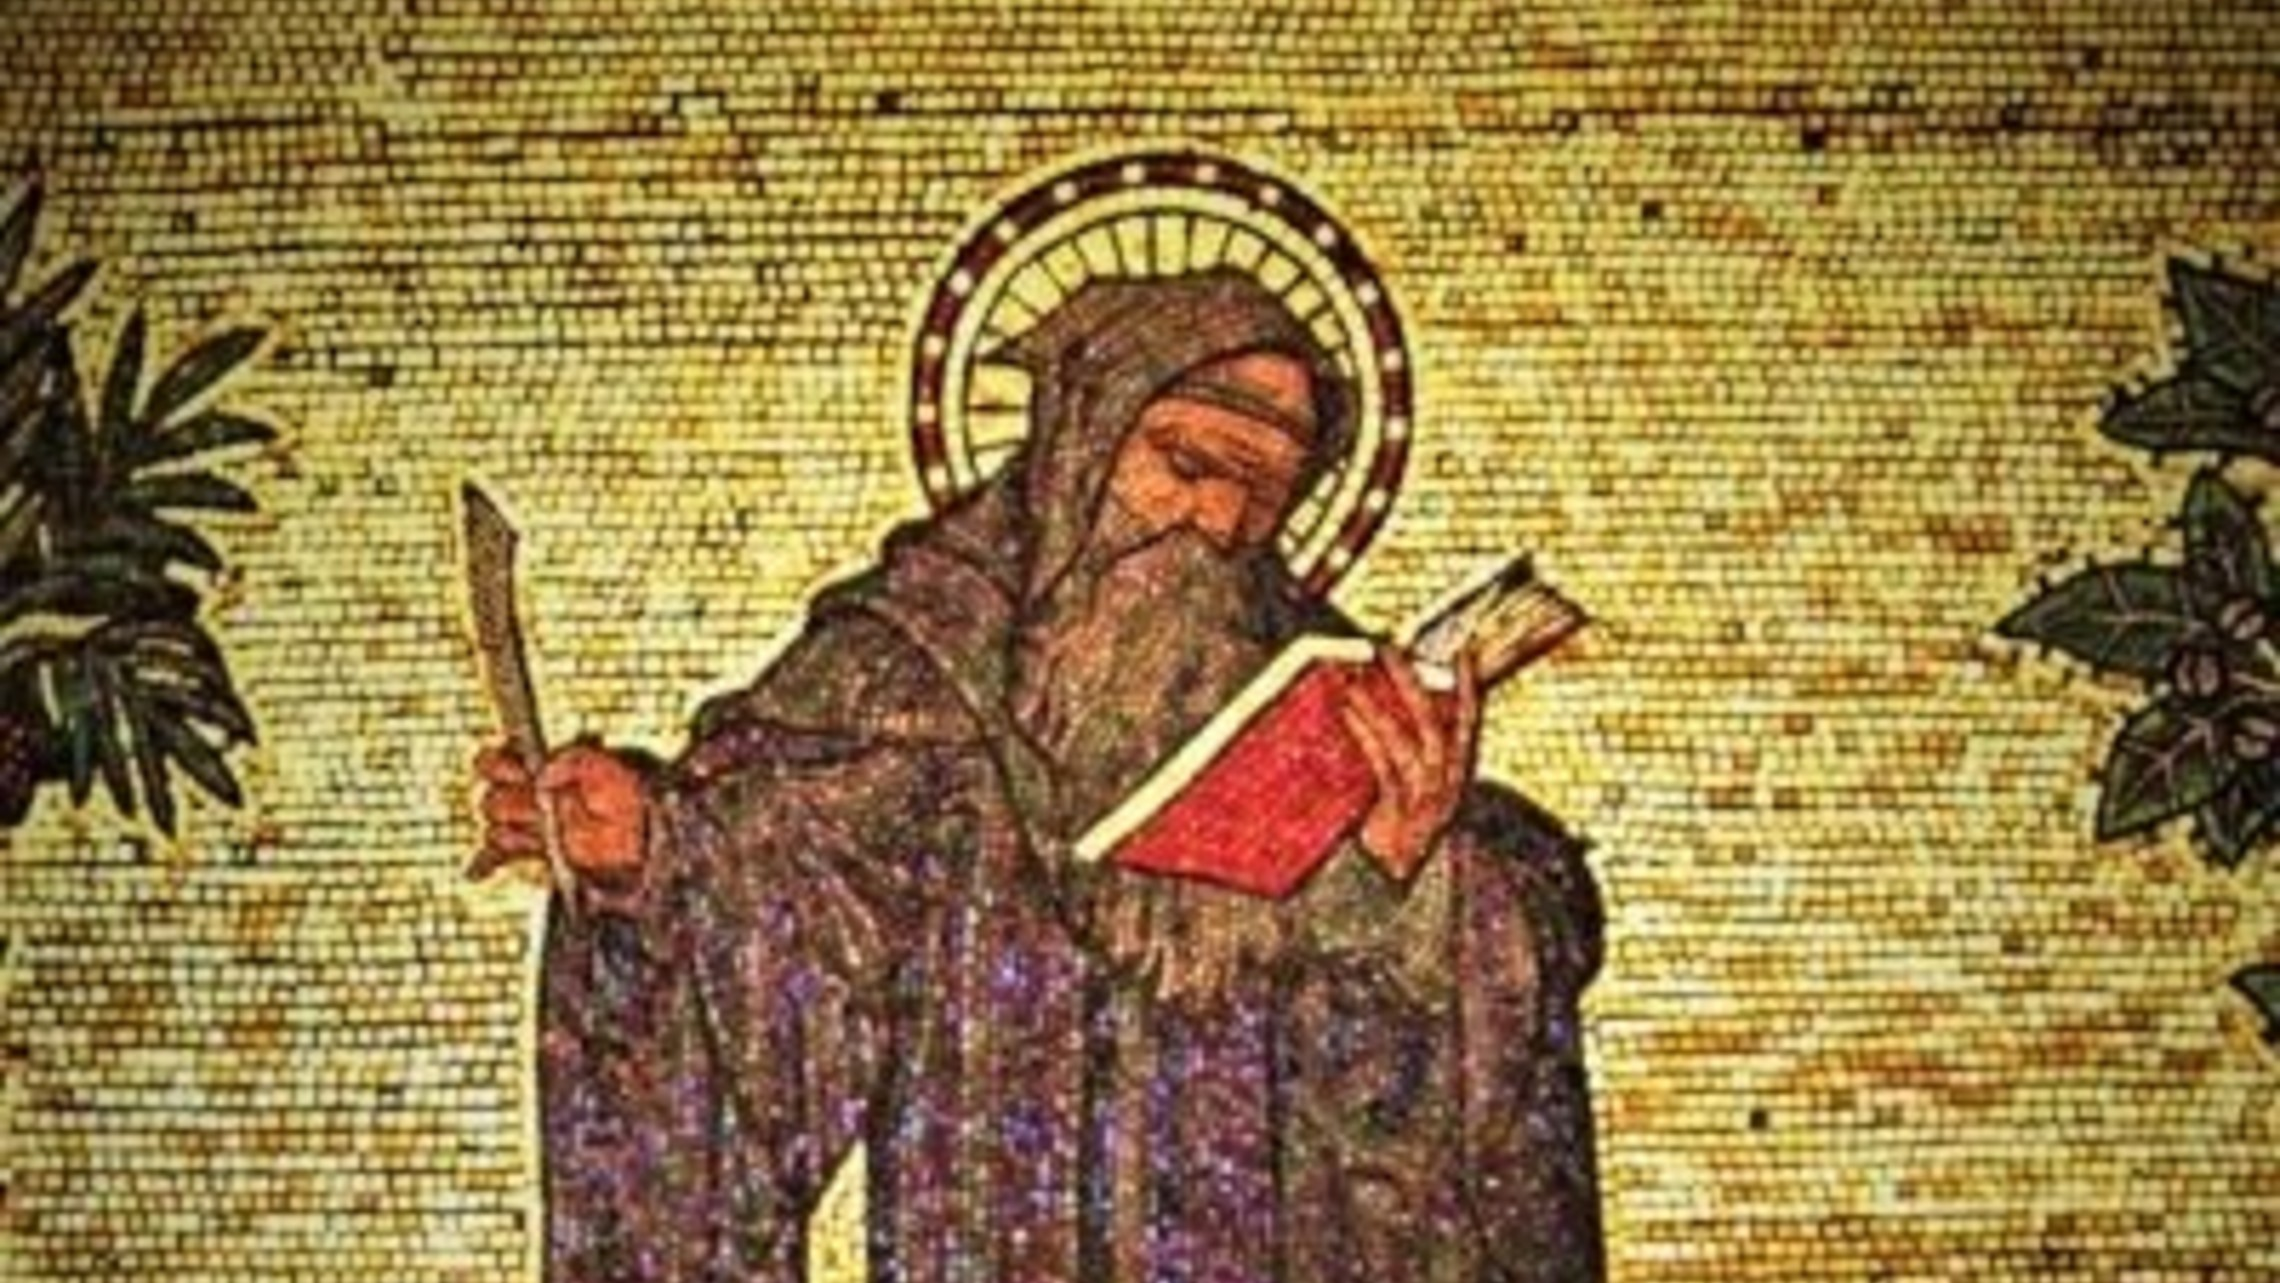 May 25 St Bede 1